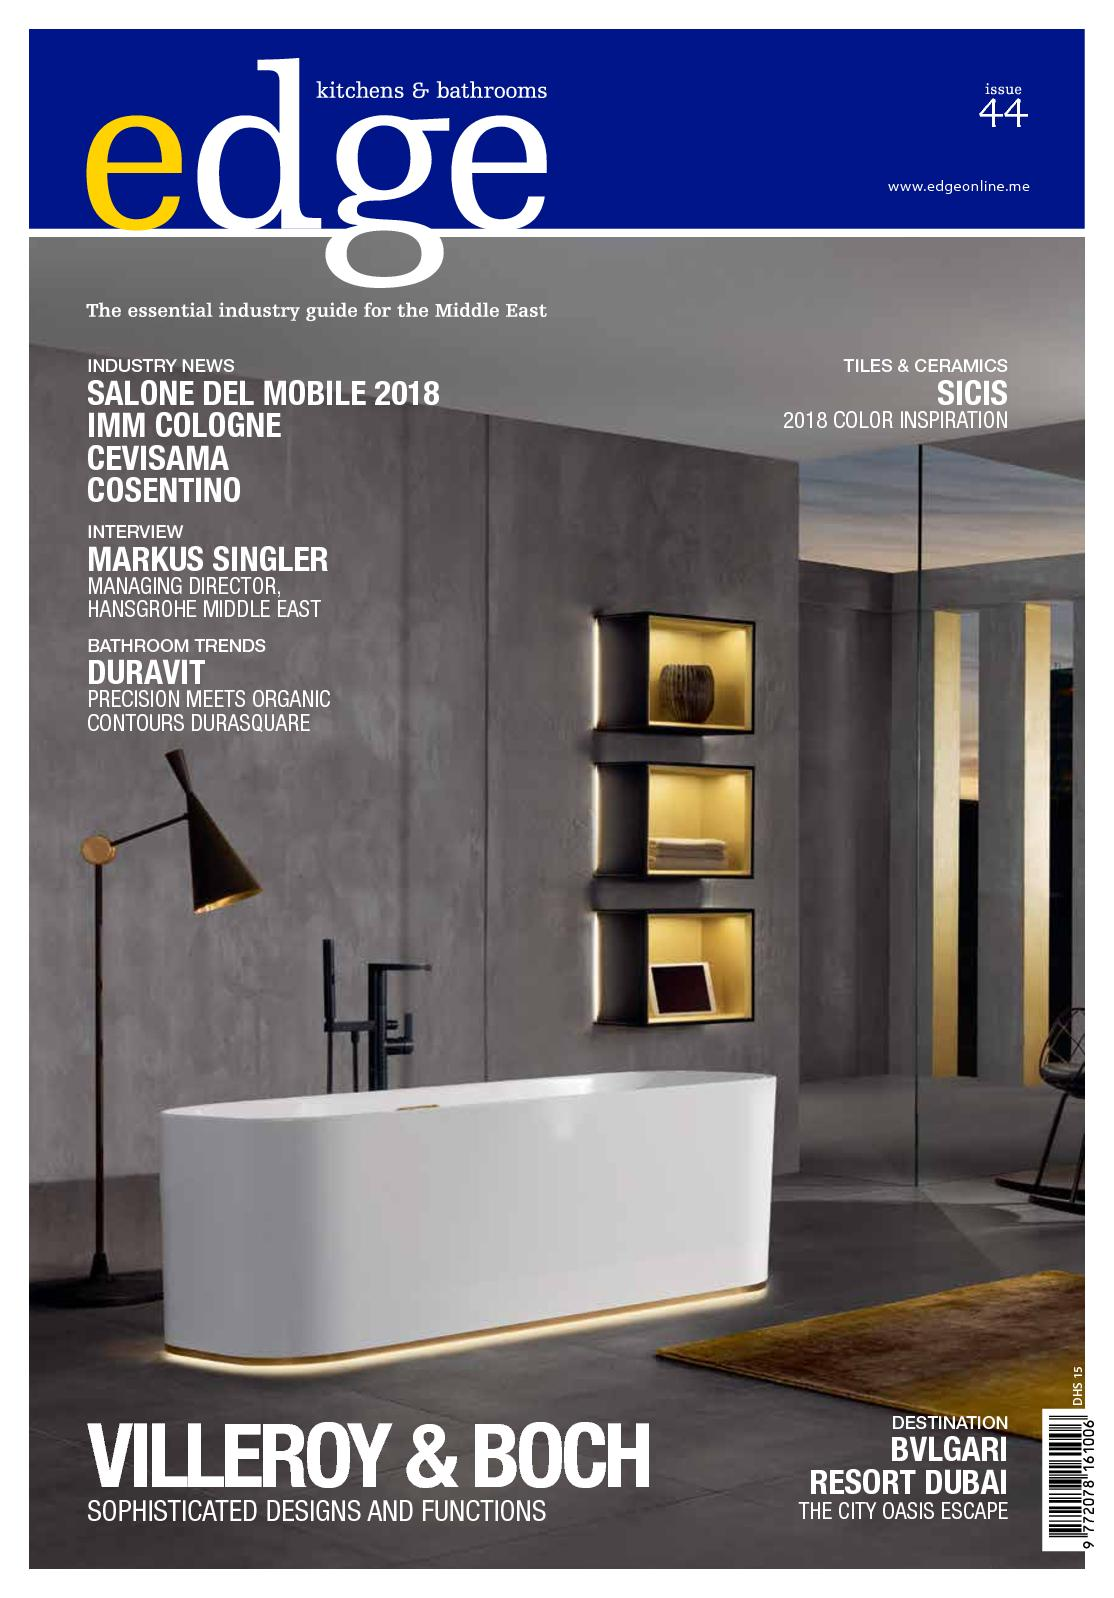 Arredobagno Este Calaméo Edge Feb April 2018 Gcc Issue 44